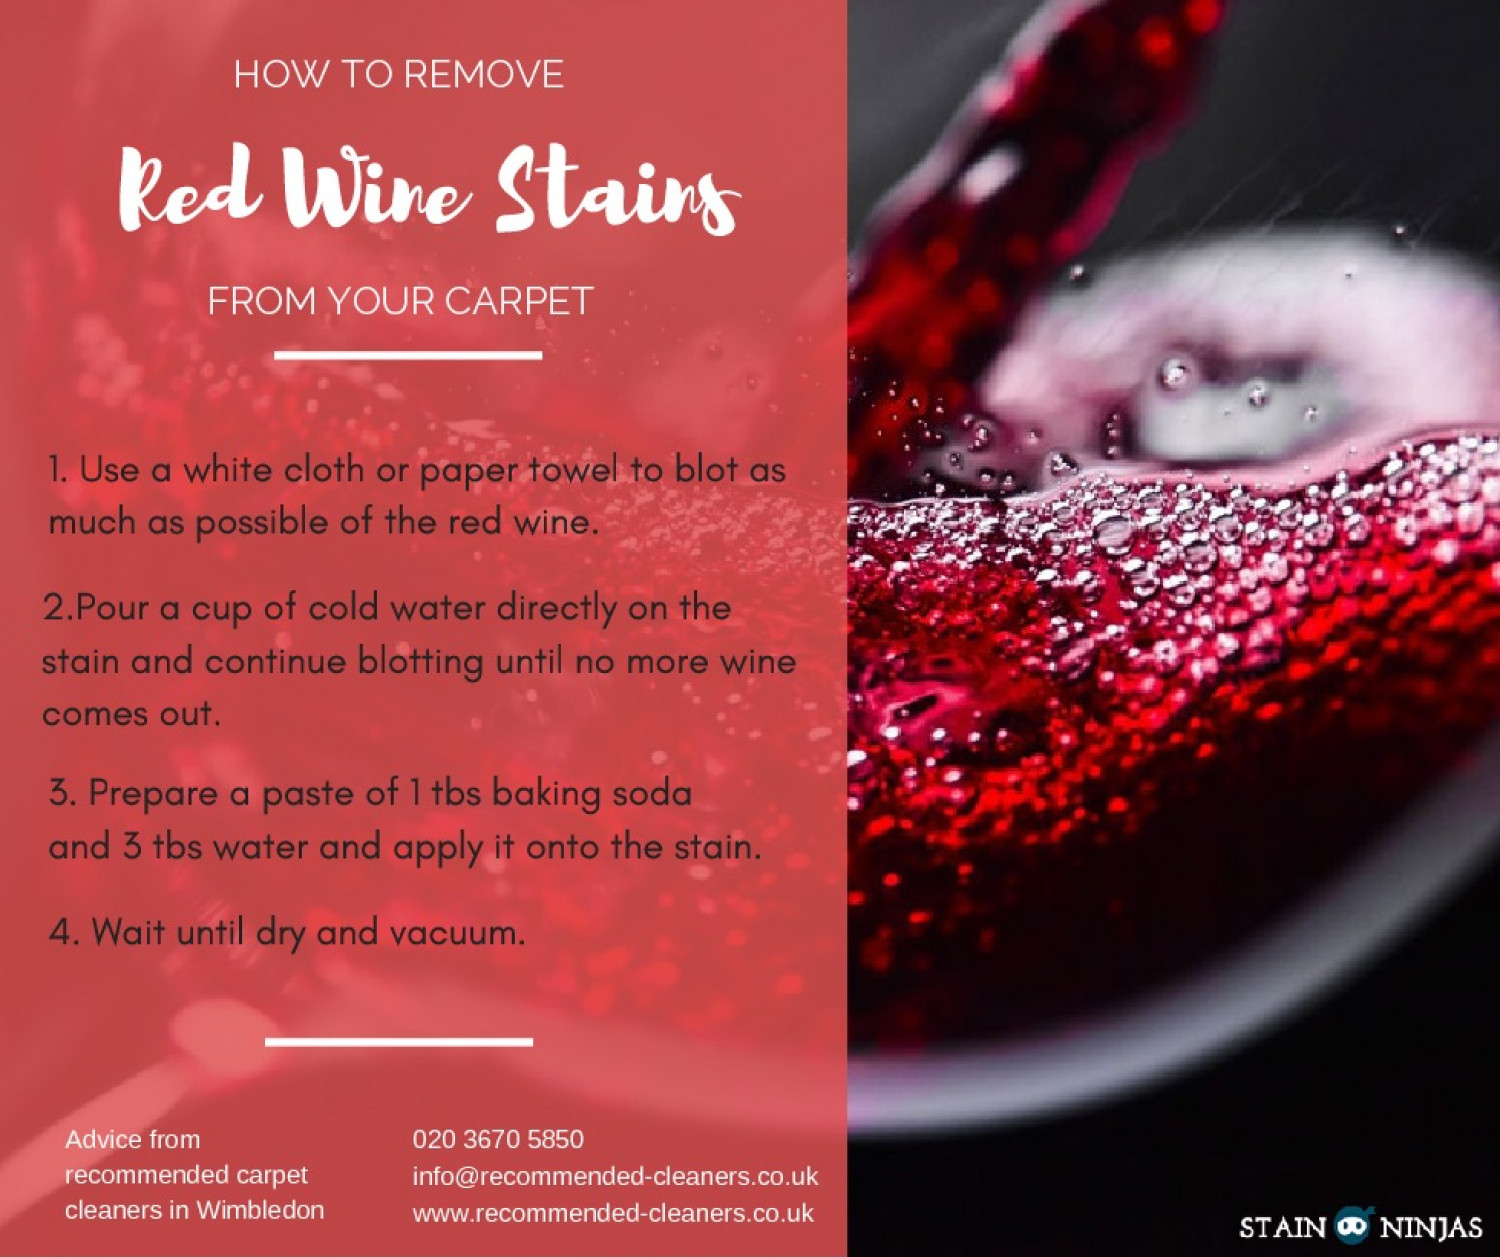 How to remove red wine stains from your carpet Infographic